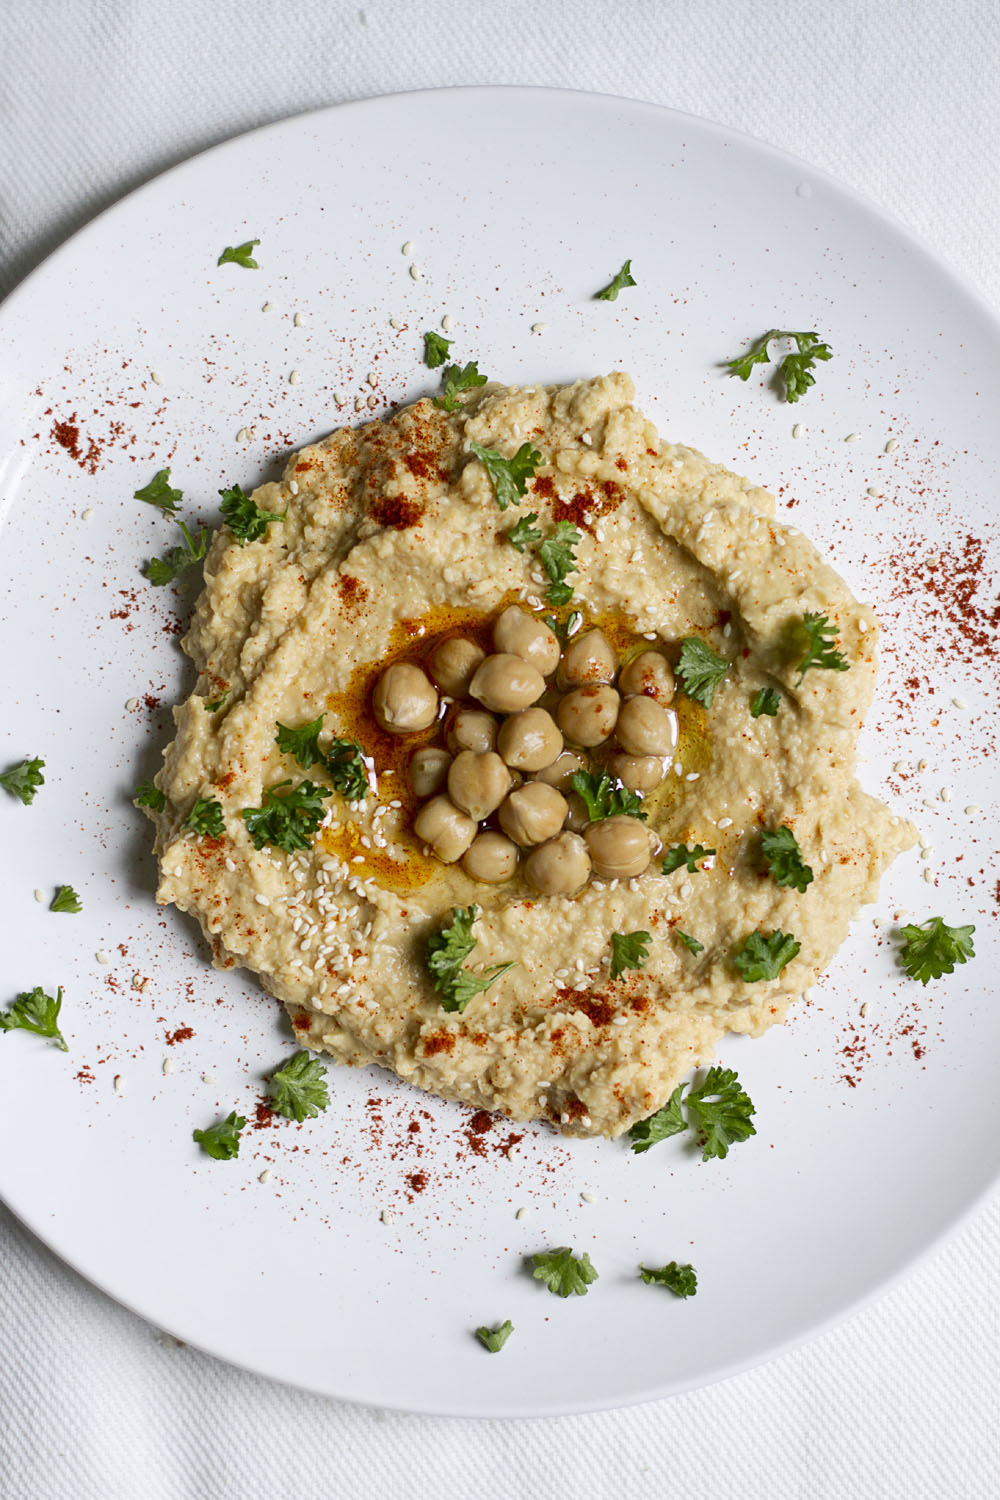 Weekend Kitchen: Hummus